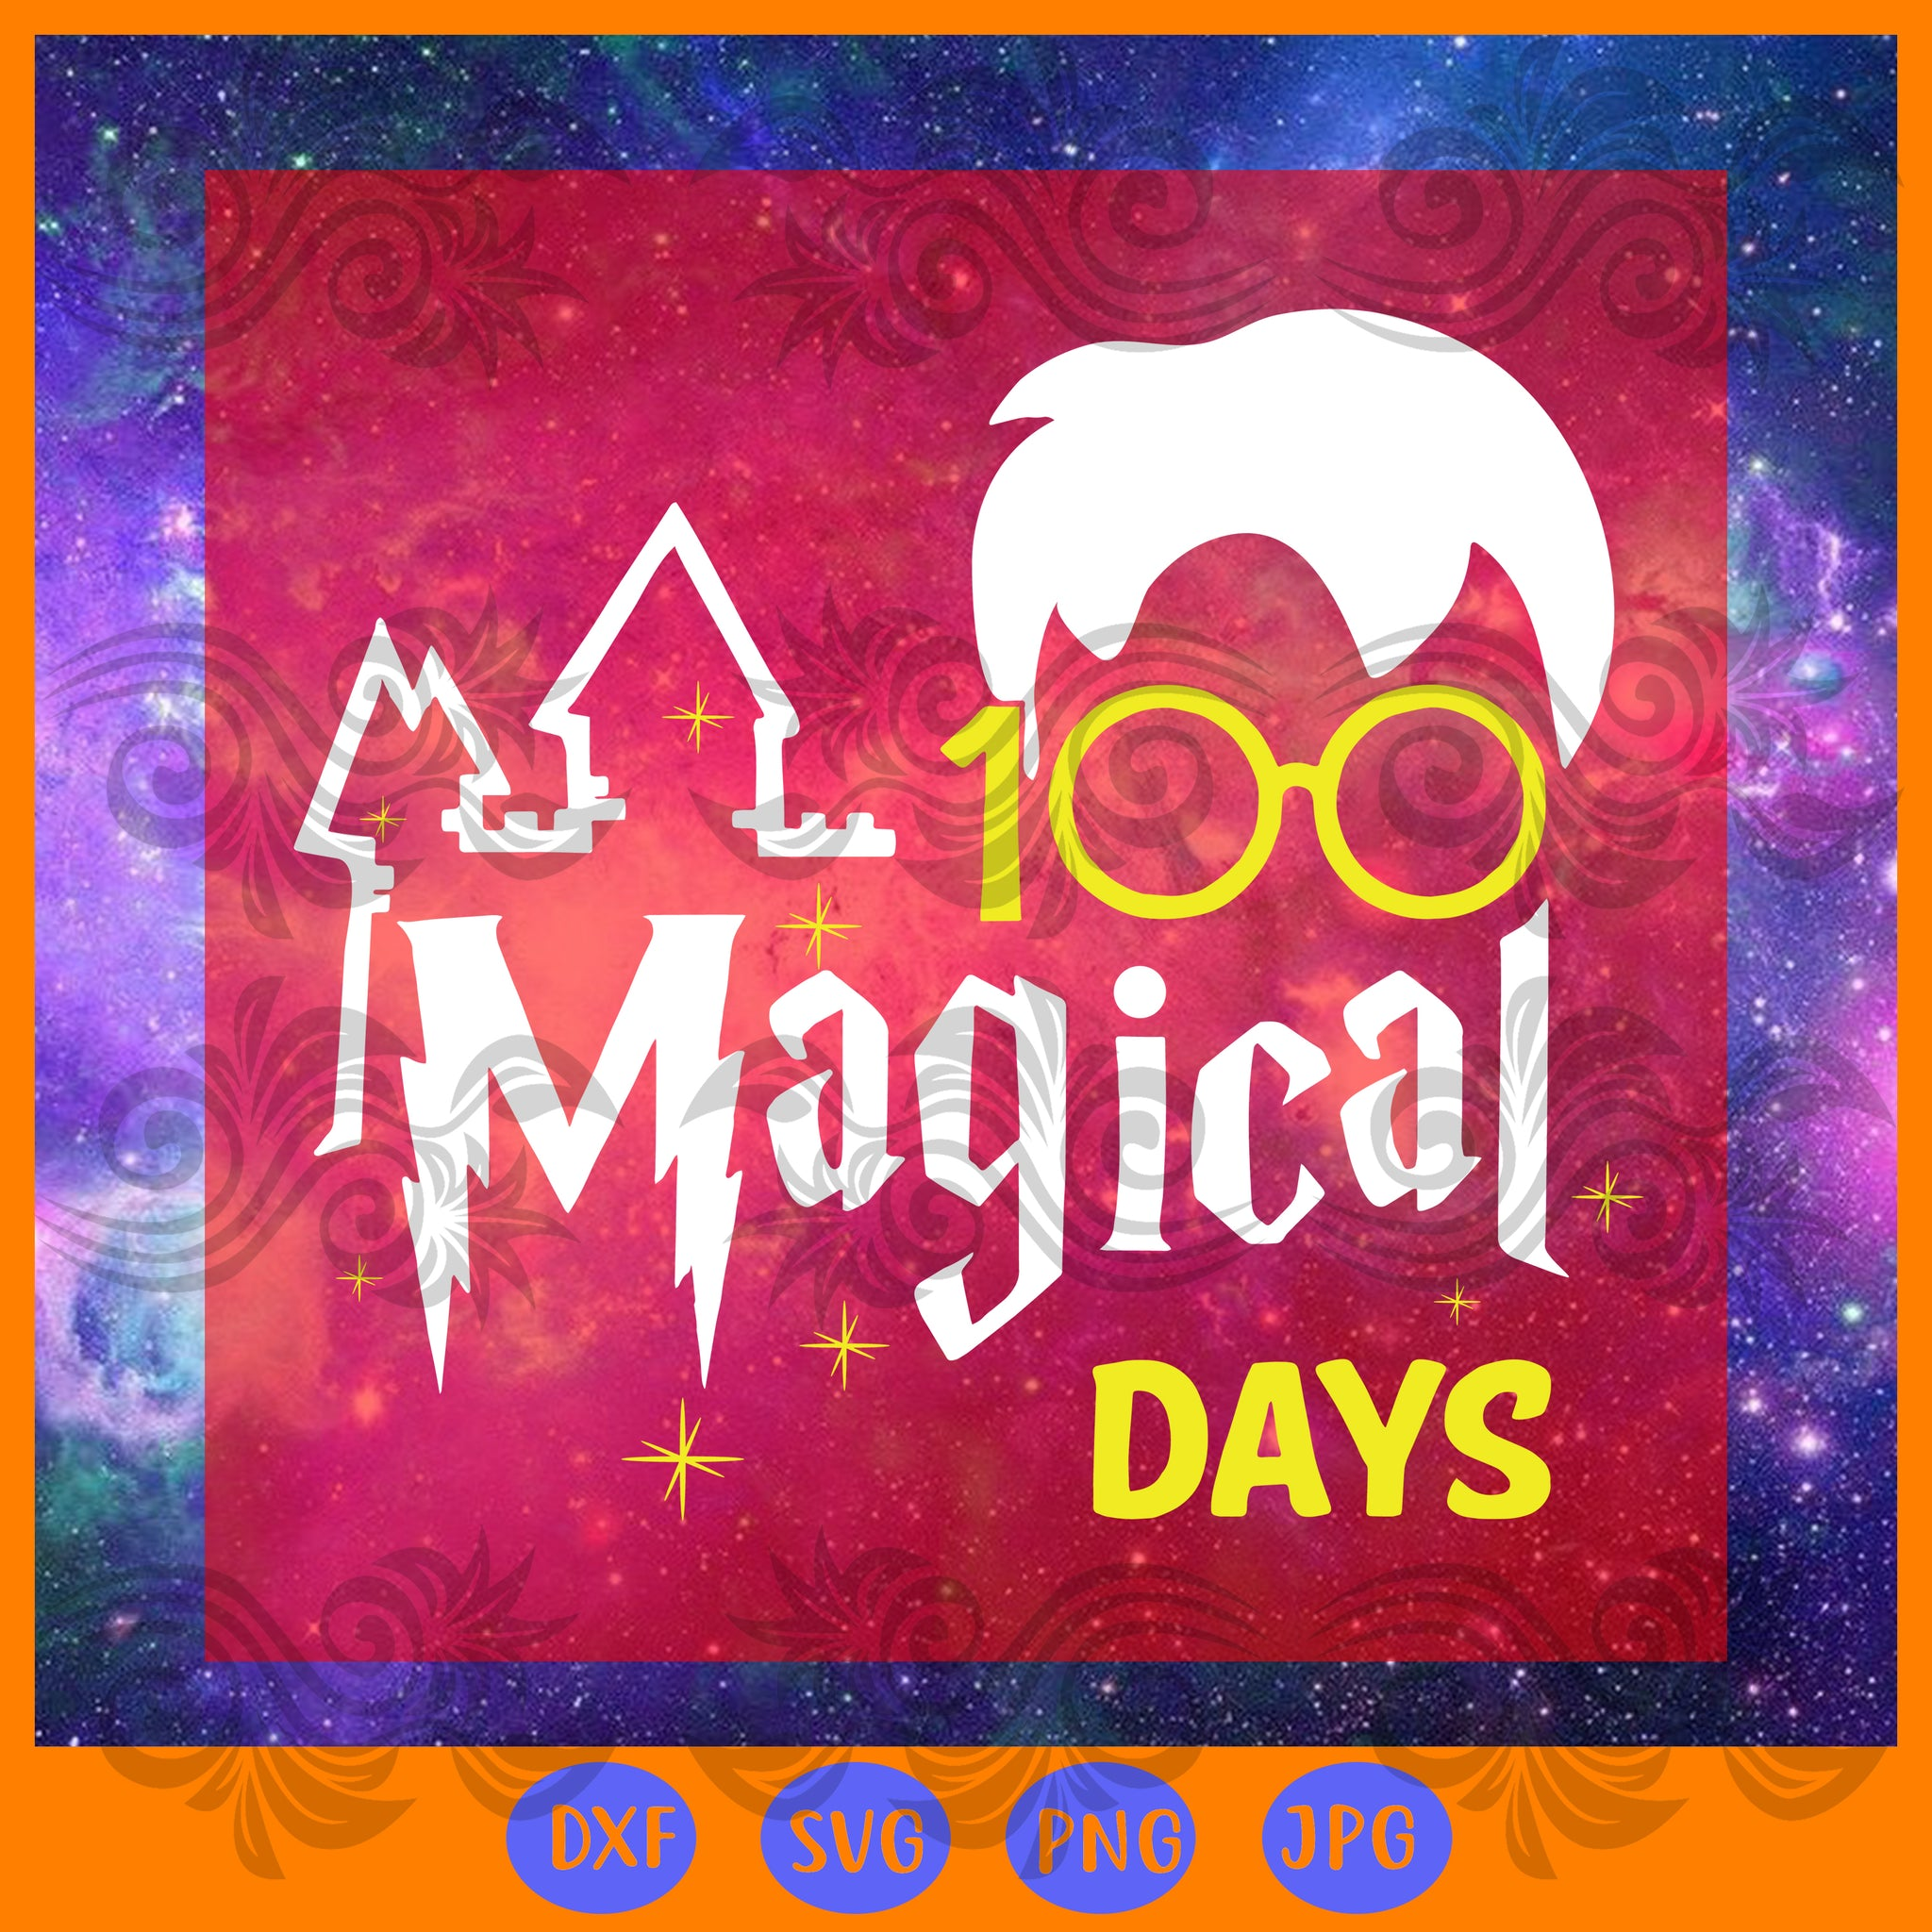 100 magical days wizard, JPG, PNG, DXF, SVG